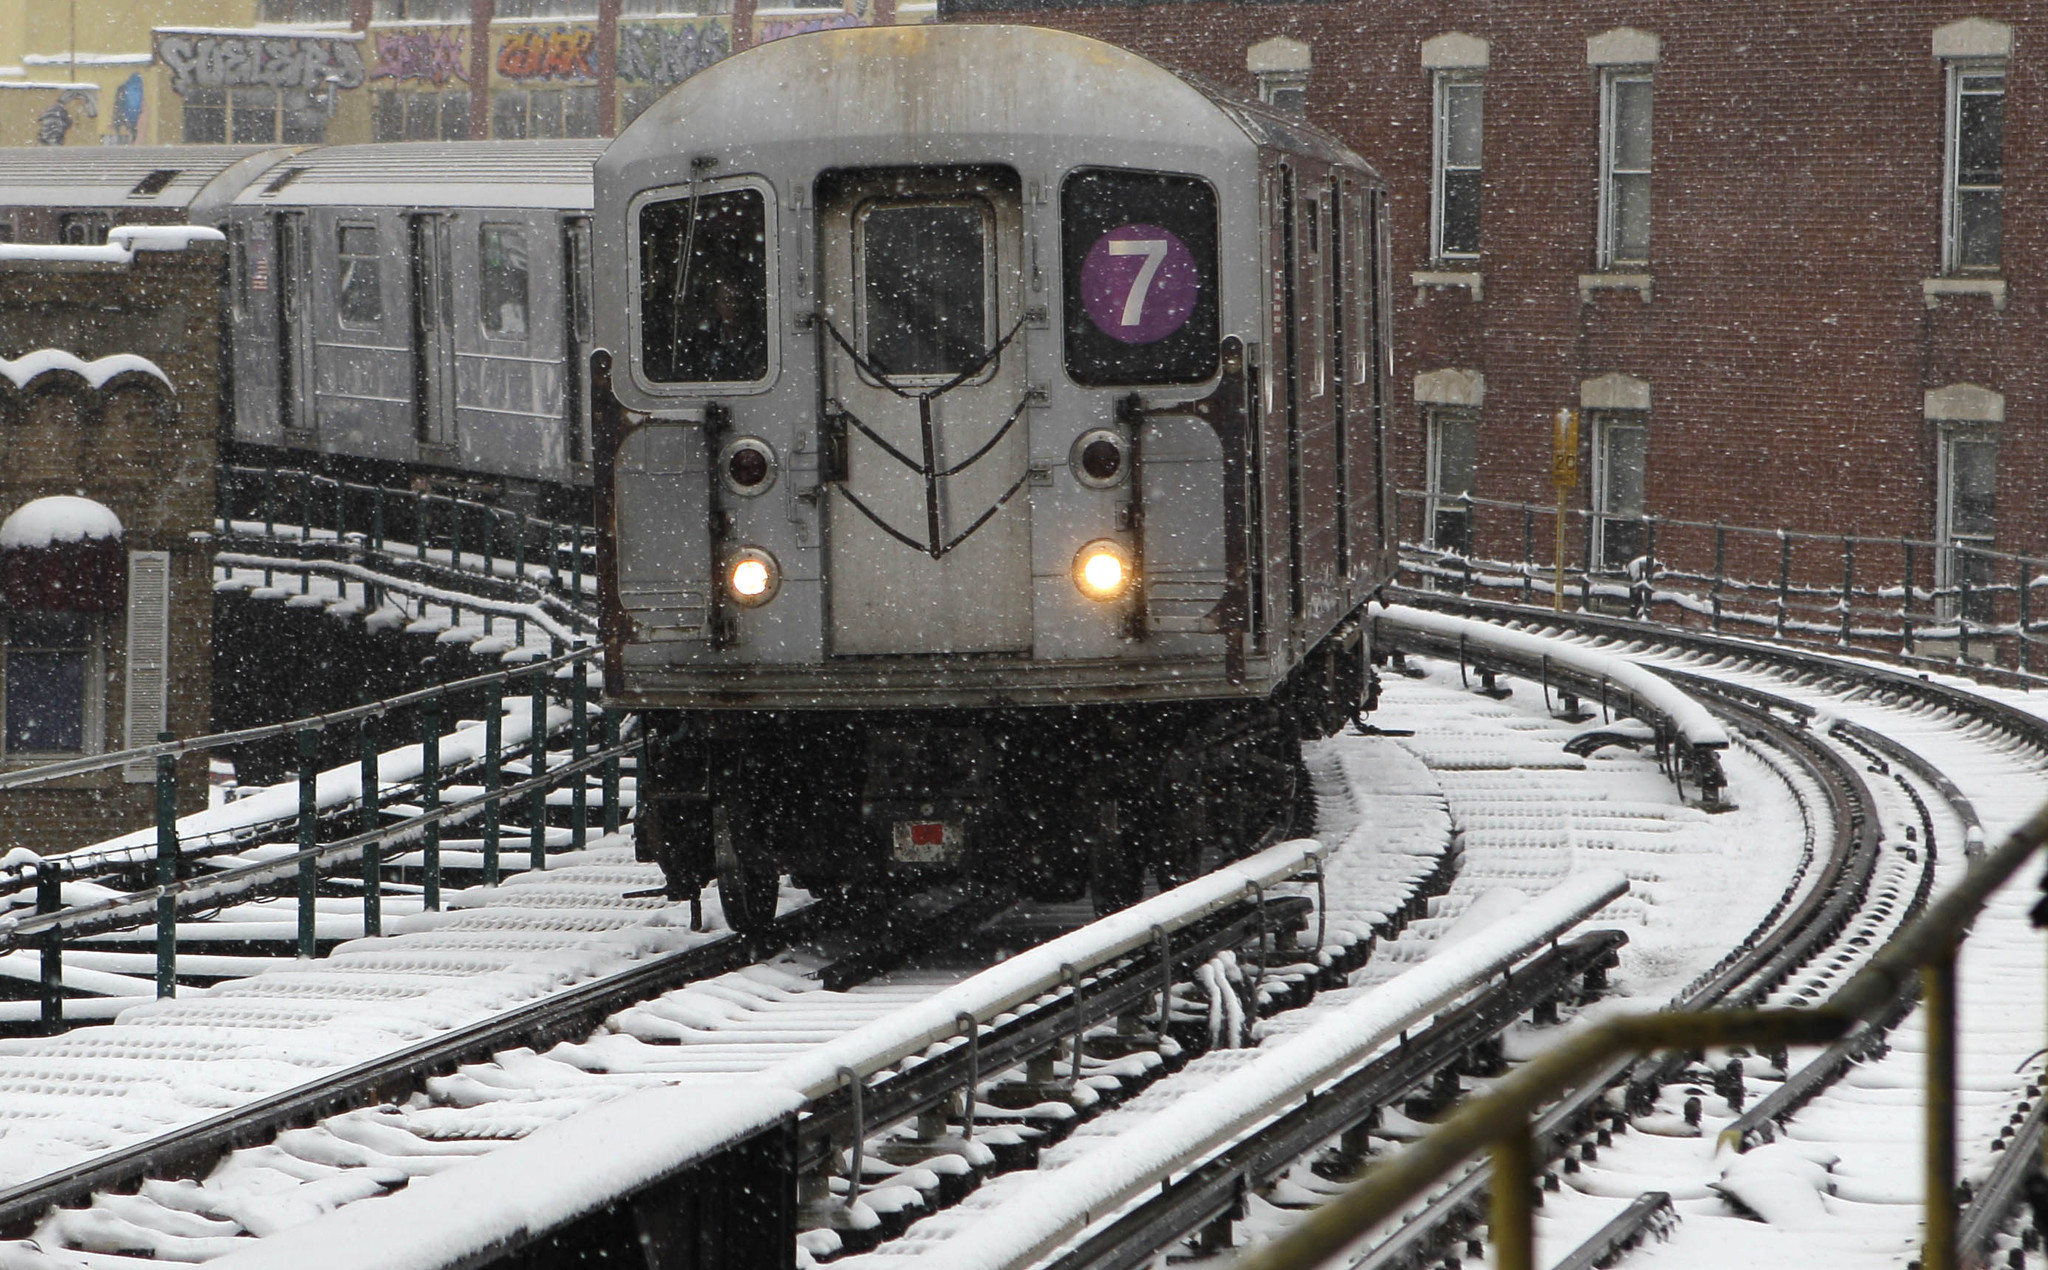 New subway signal tech on No. 7 line failed during Monday snowstorm